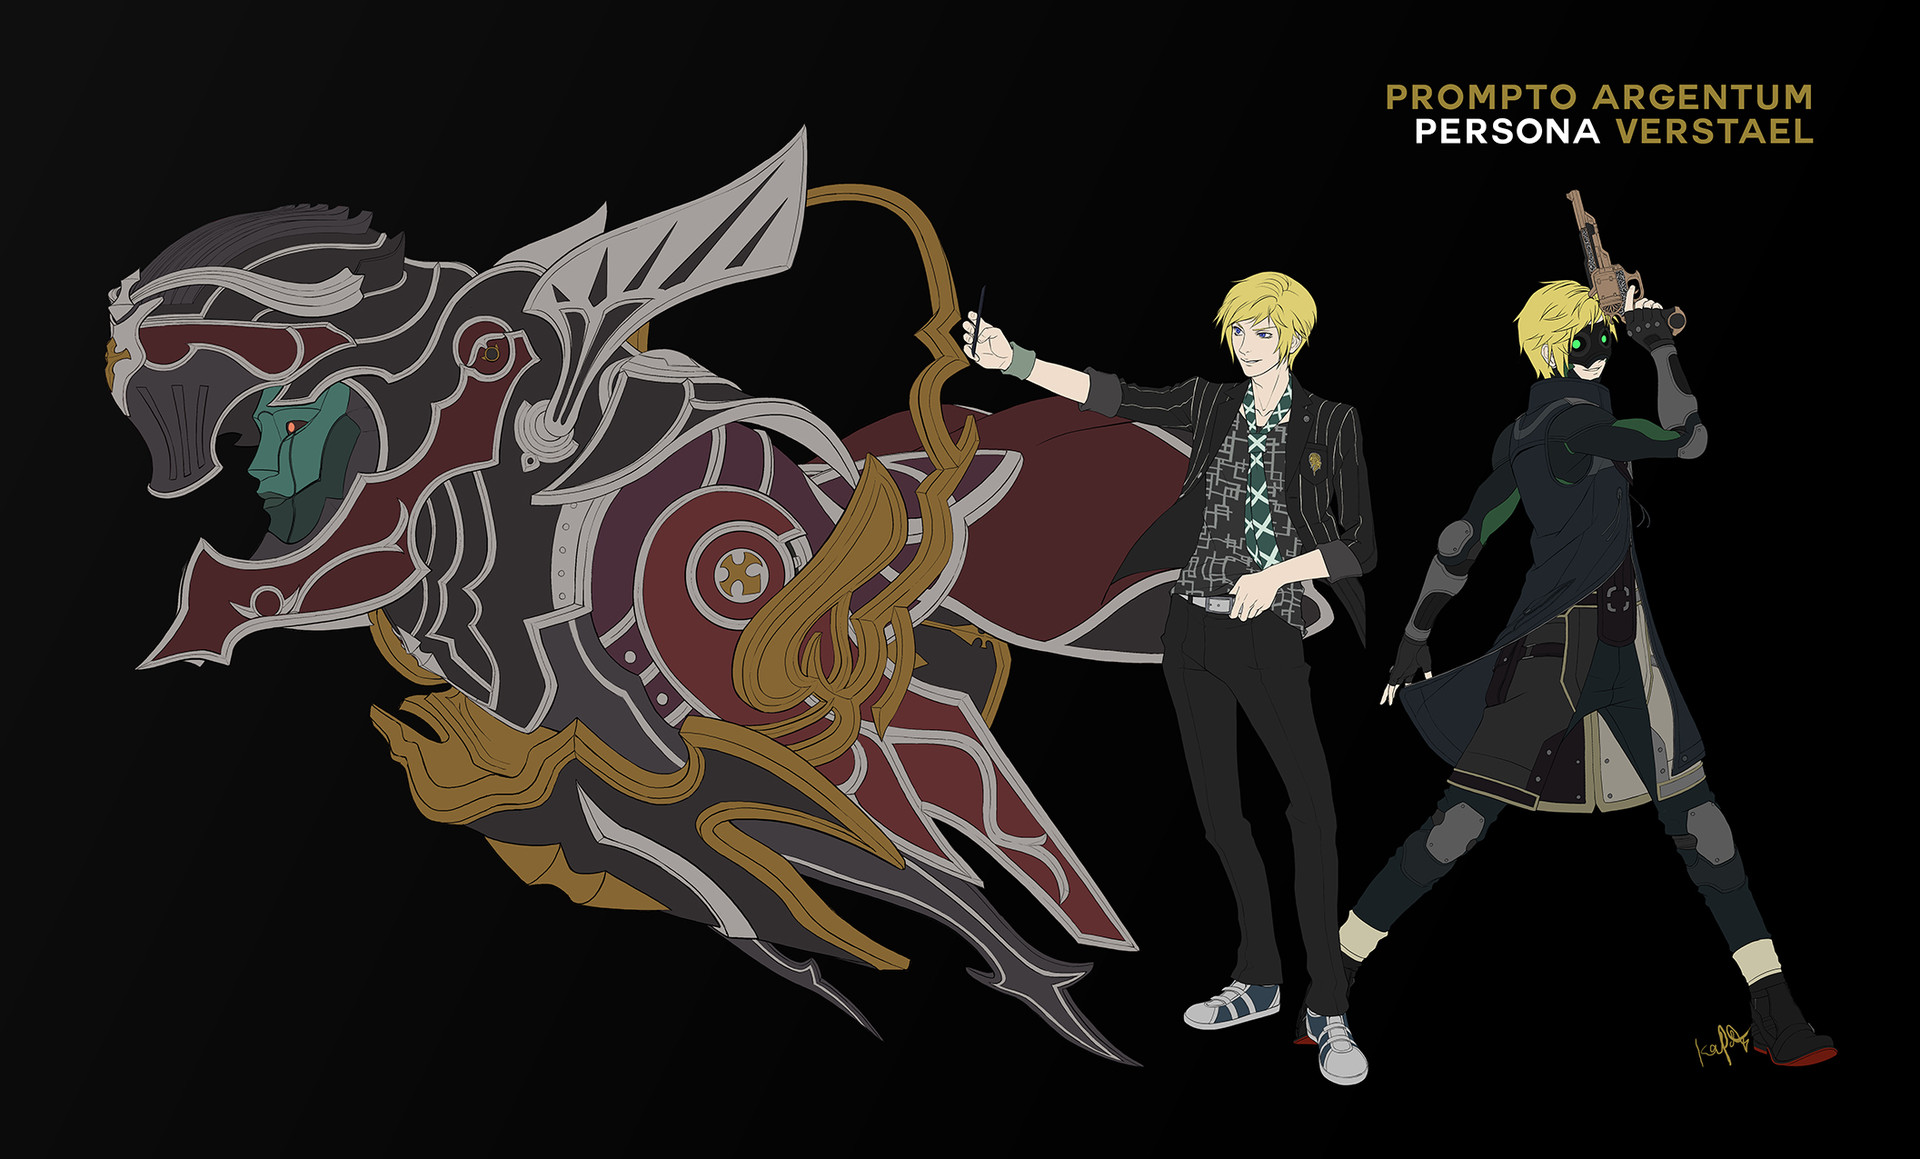 kevin patag final fantasy xv x persona 5 crossover character designs